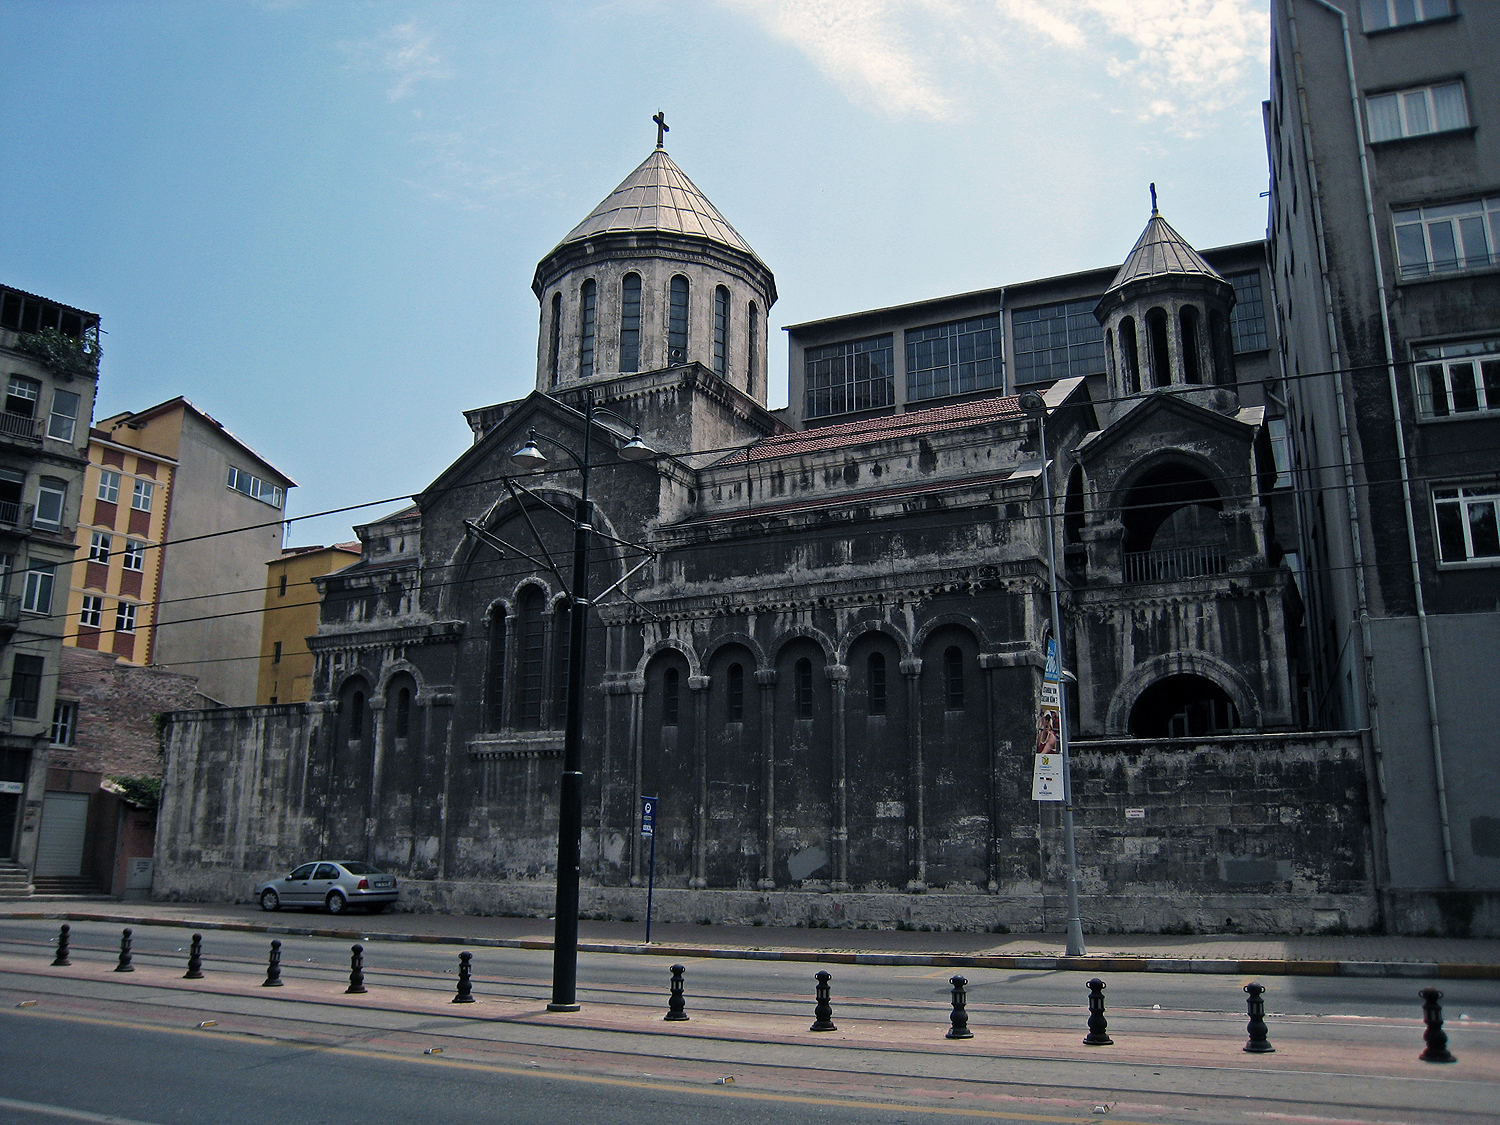 The Getronagan Varjaran, or Central High School, established in 1886, next to the St. Gregory the Illuminator church, on a main thoroughfare in Istanbul; many illustrious names are associated with this school, within the walls of which is a piano once played by none other than Gomidas (Komitas)